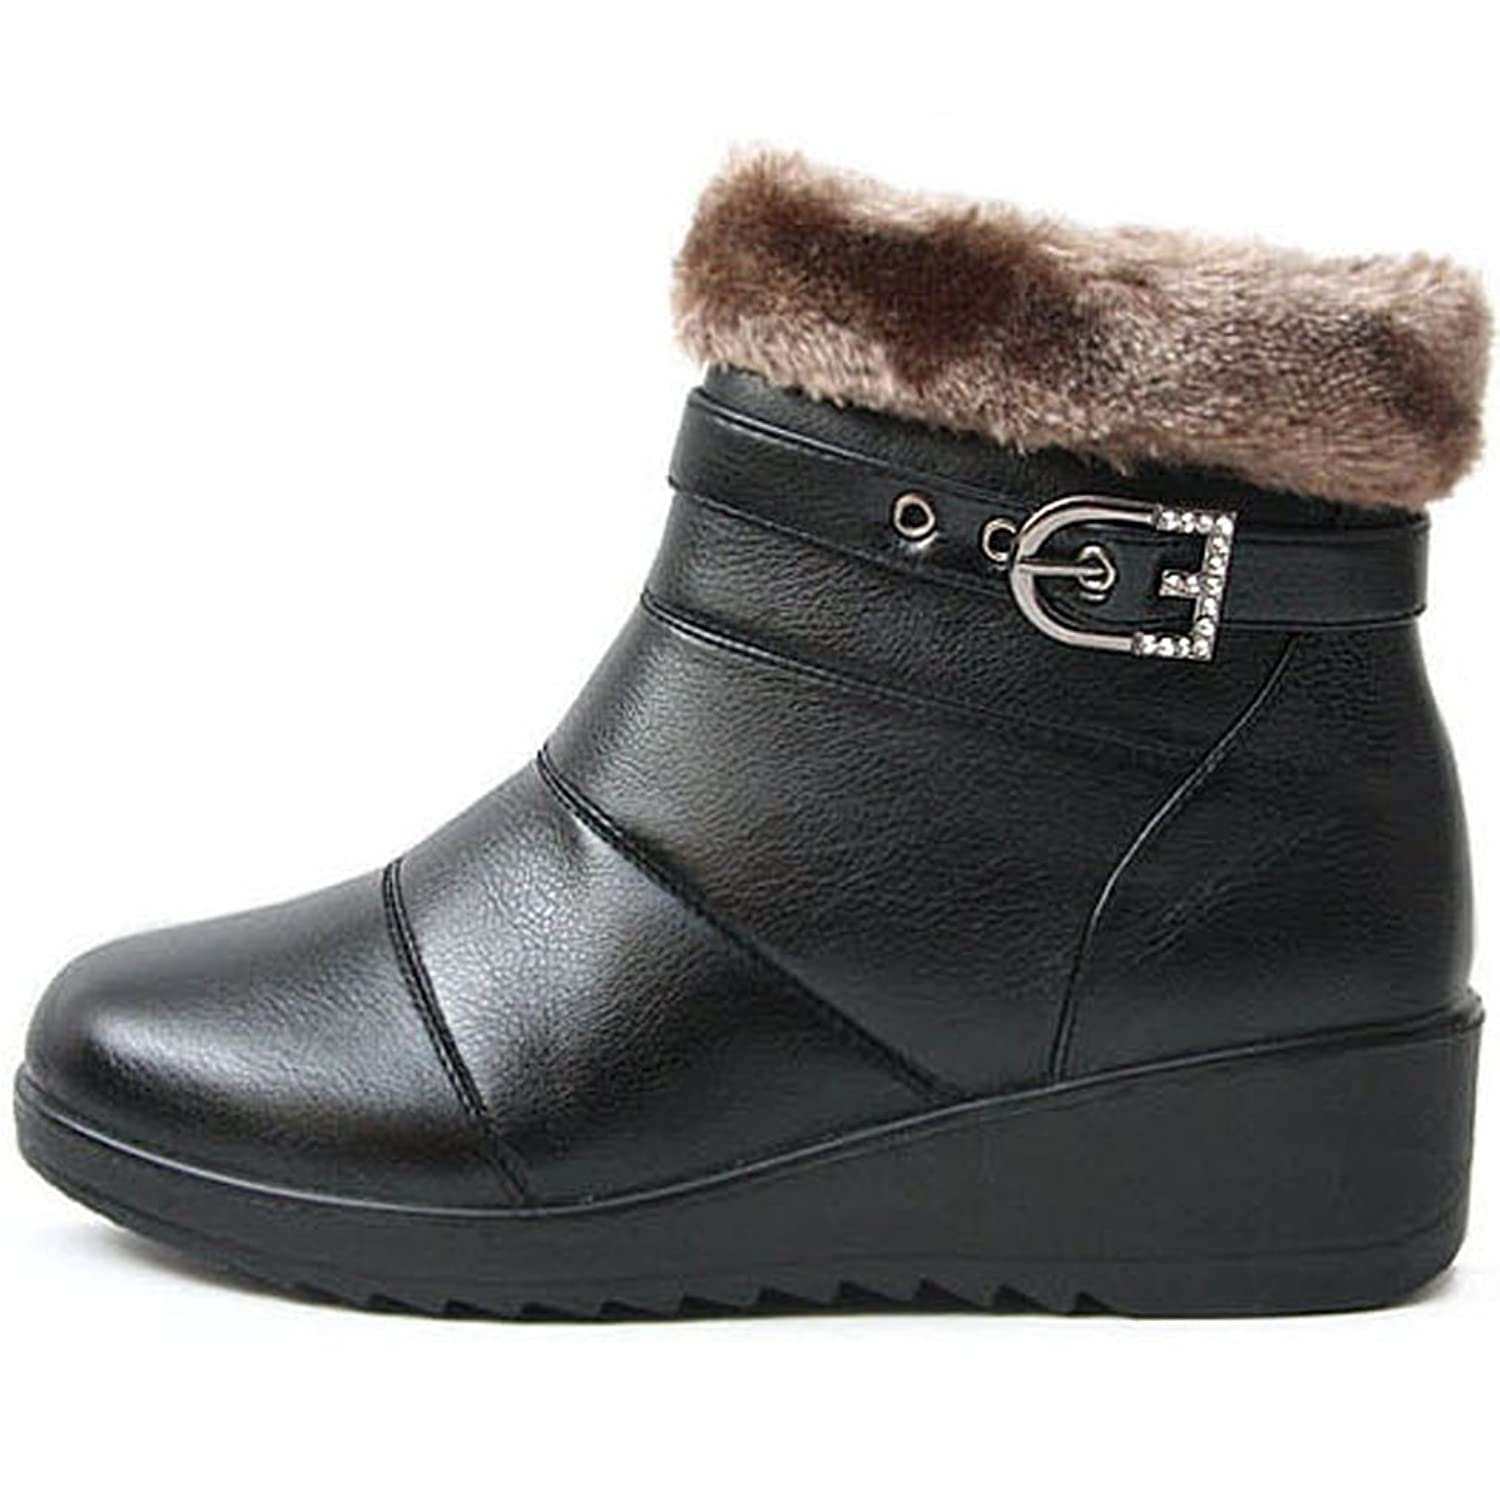 3c668f8fb61 lovely New Womens Comfort Low Heels Winter Snow Warm Side Zip Ankle Boots  Black